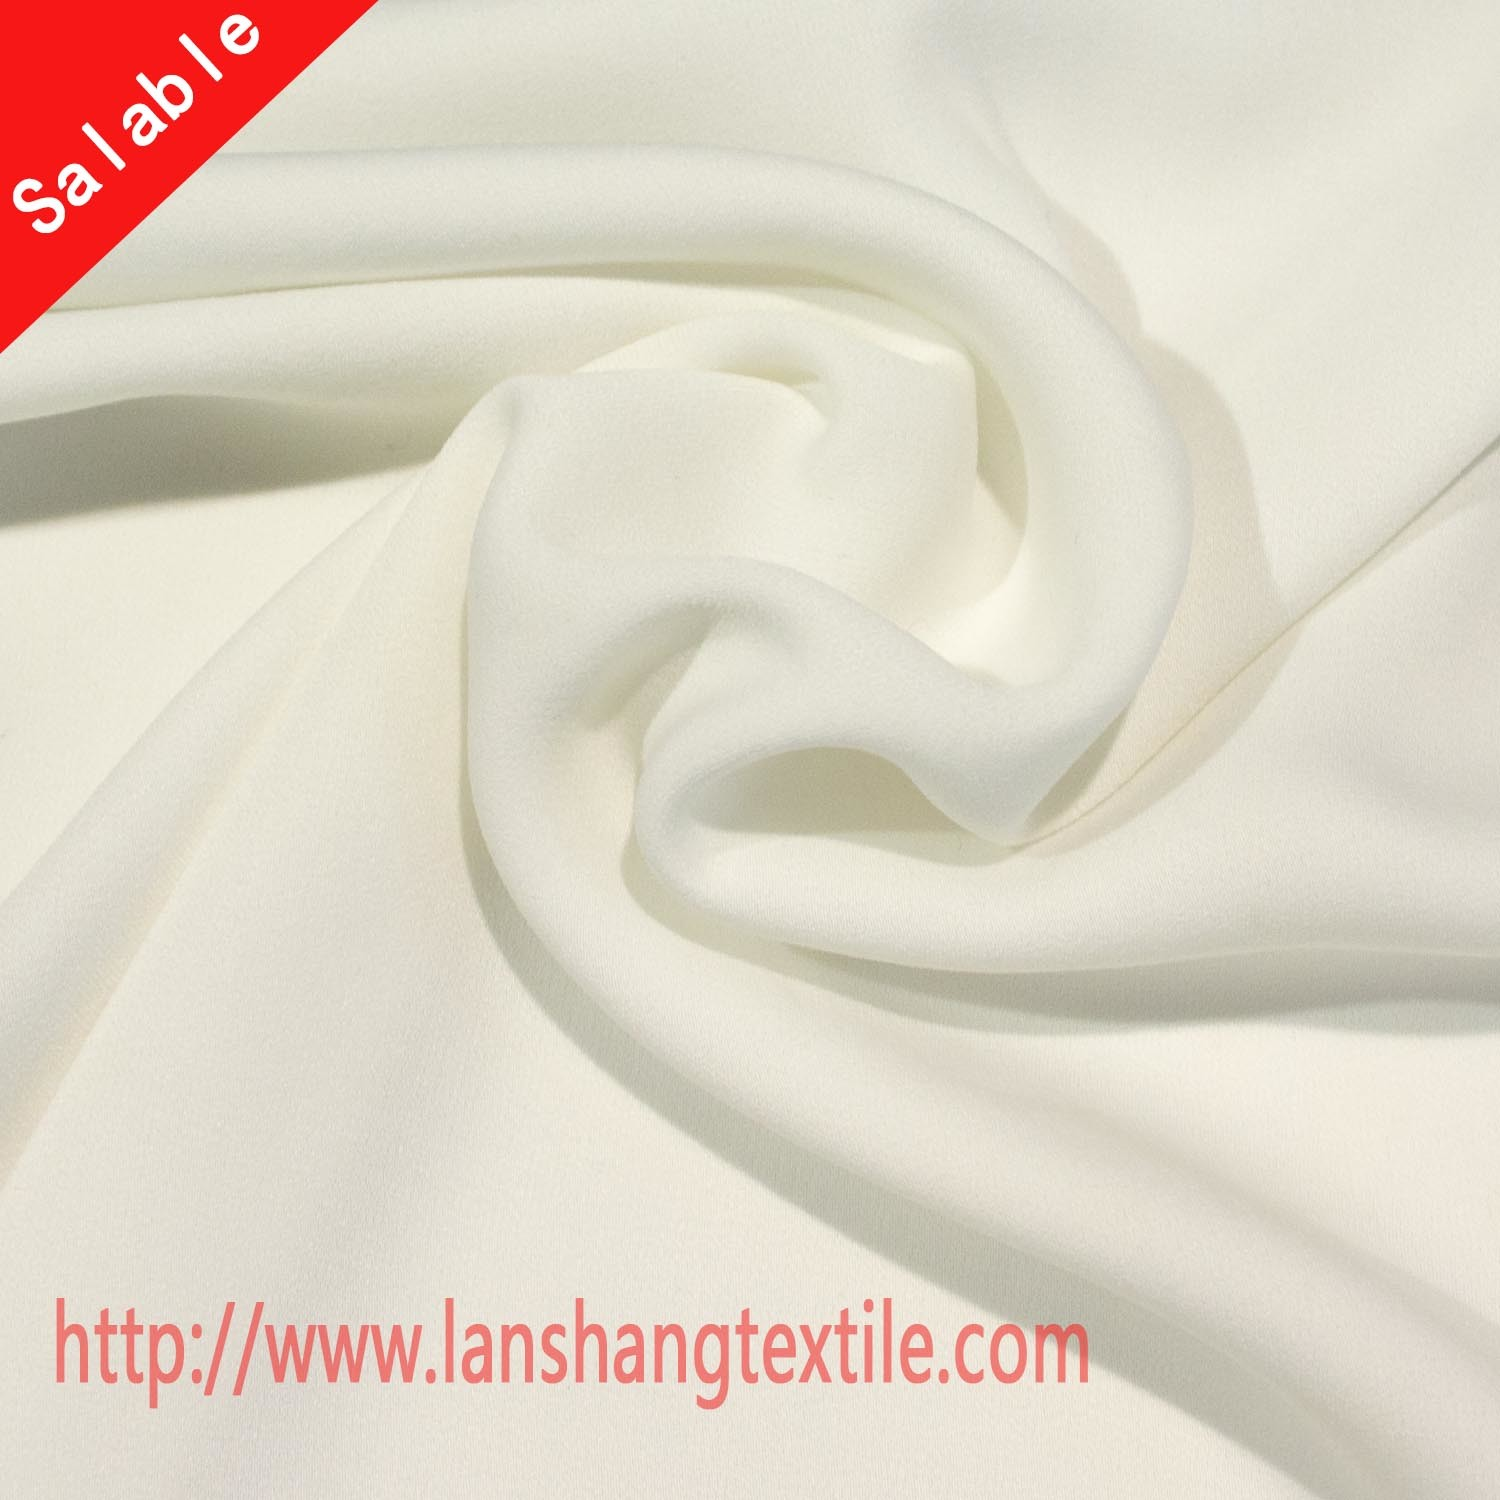 Polyester Fabric Chiffon Fabric Chemical Fabric Side Stretch Chiffon Fabric for Dress Skirt Garment Home Textile